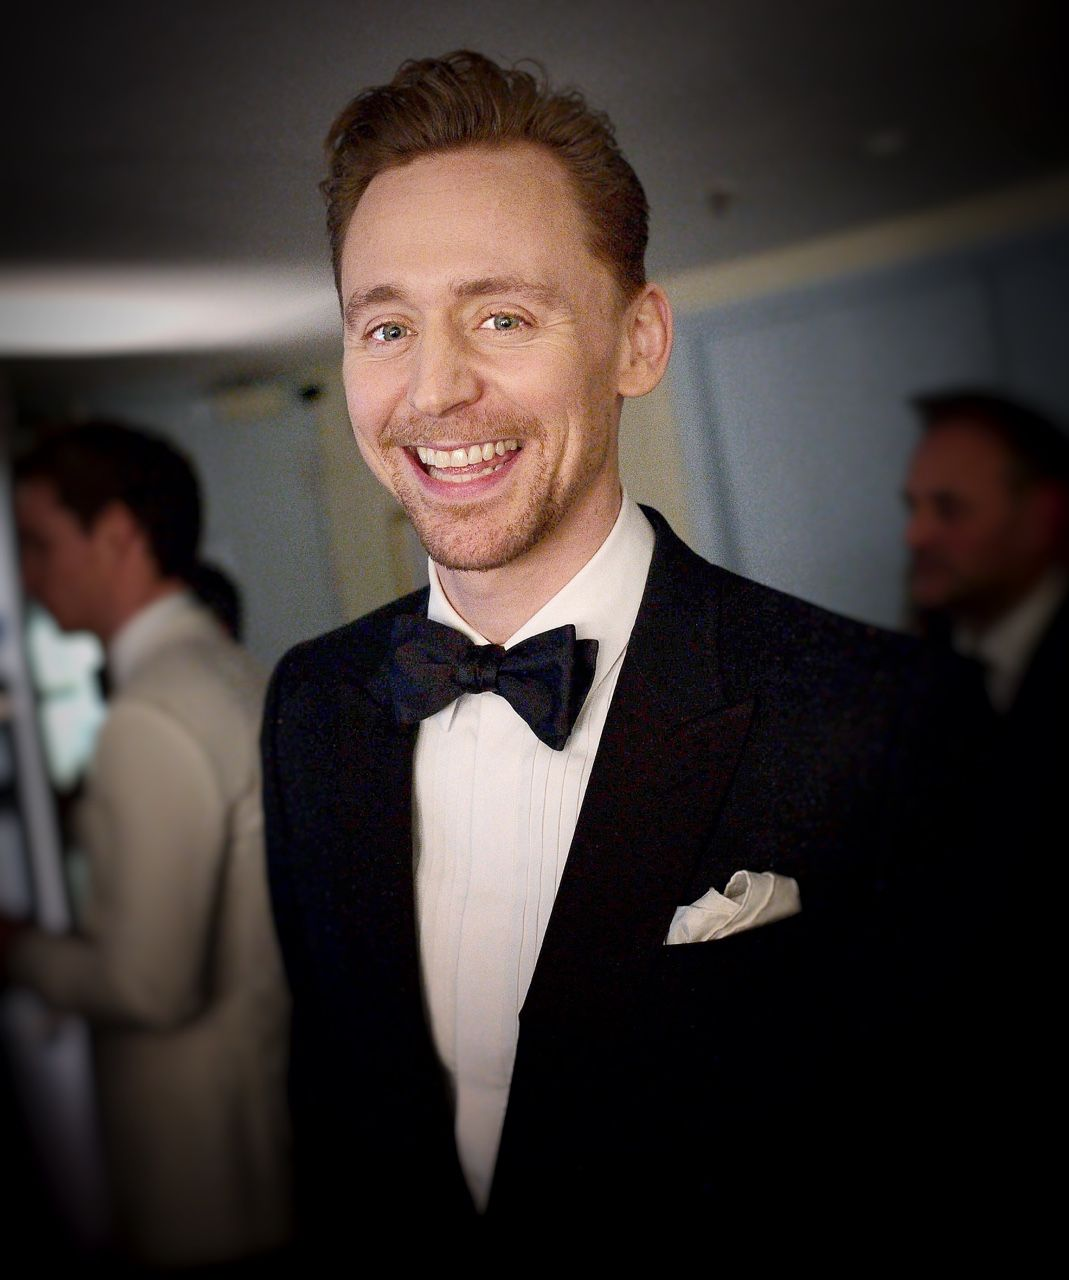 Tom Hiddleston backstage at the 71st Annual BAFTA Film Awards (http://the-haven-of-fiction.tumblr.com/post/157167944508/tom-hiddleston-backstage-at-the-71st-annual-bafta )